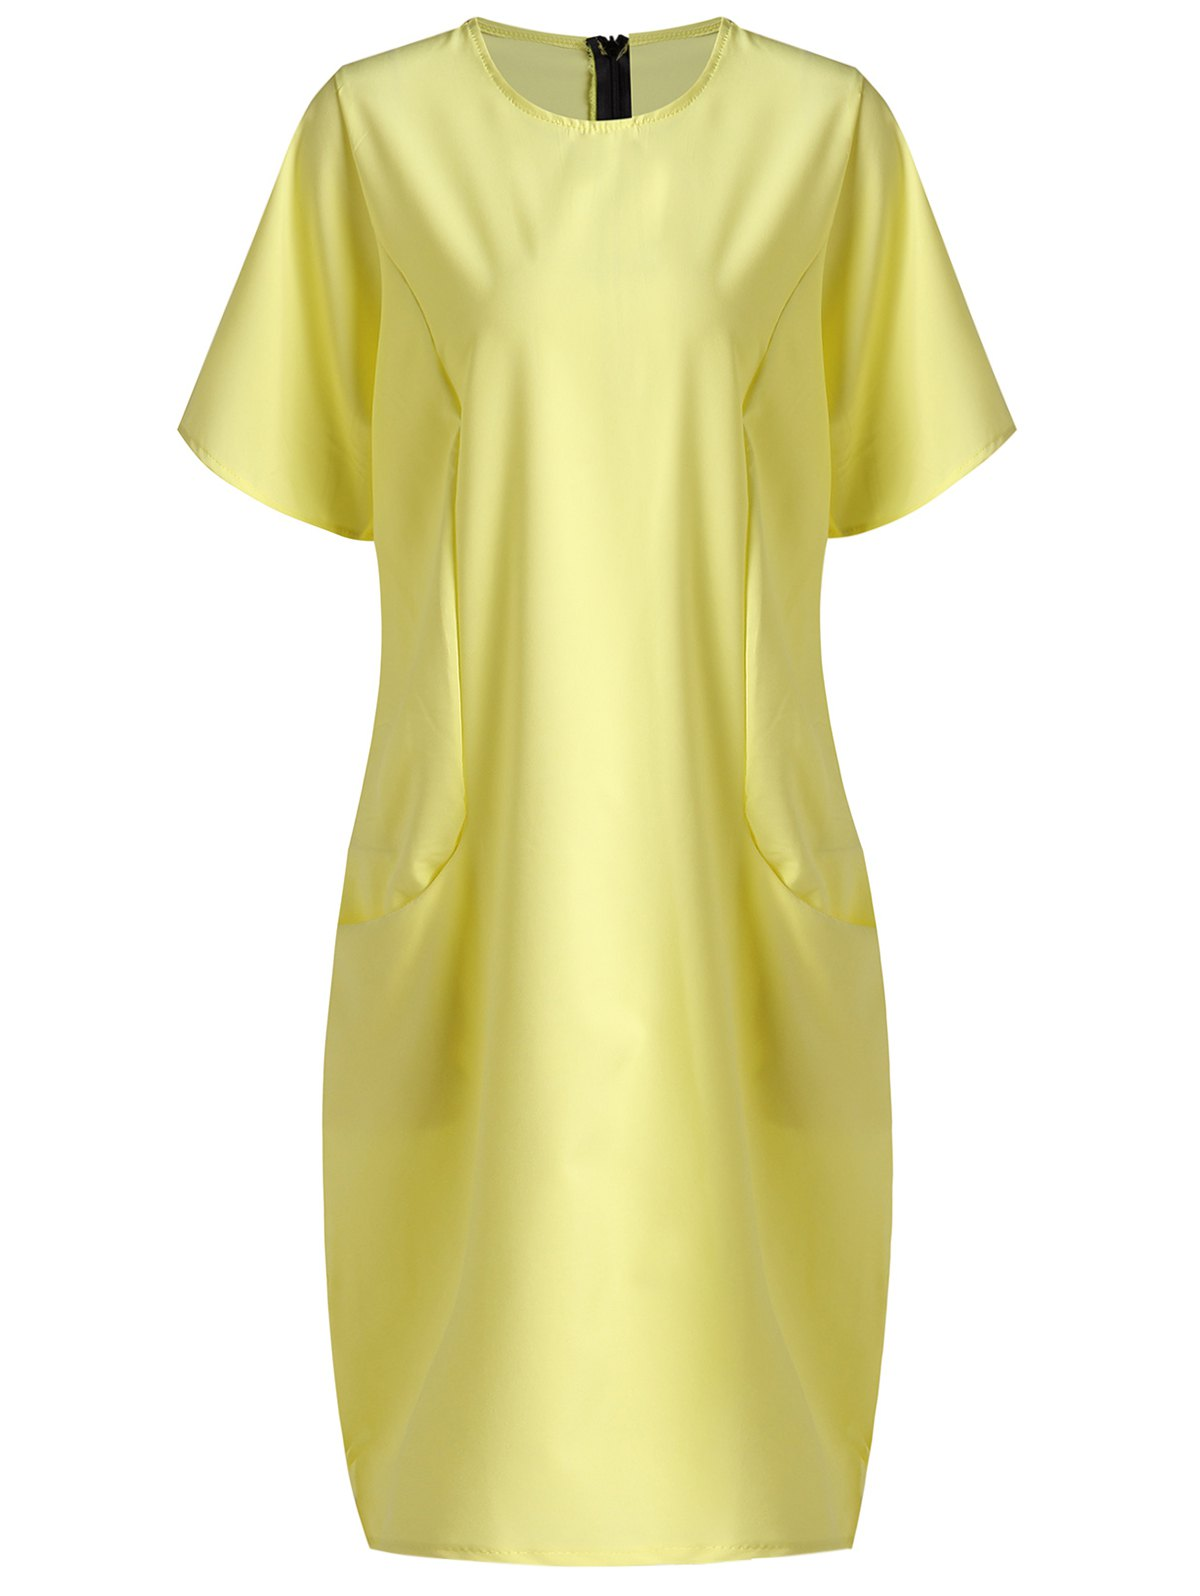 Fashionable Women's Scoop Neck Short Sleeve Midi Dress - YELLOW XL